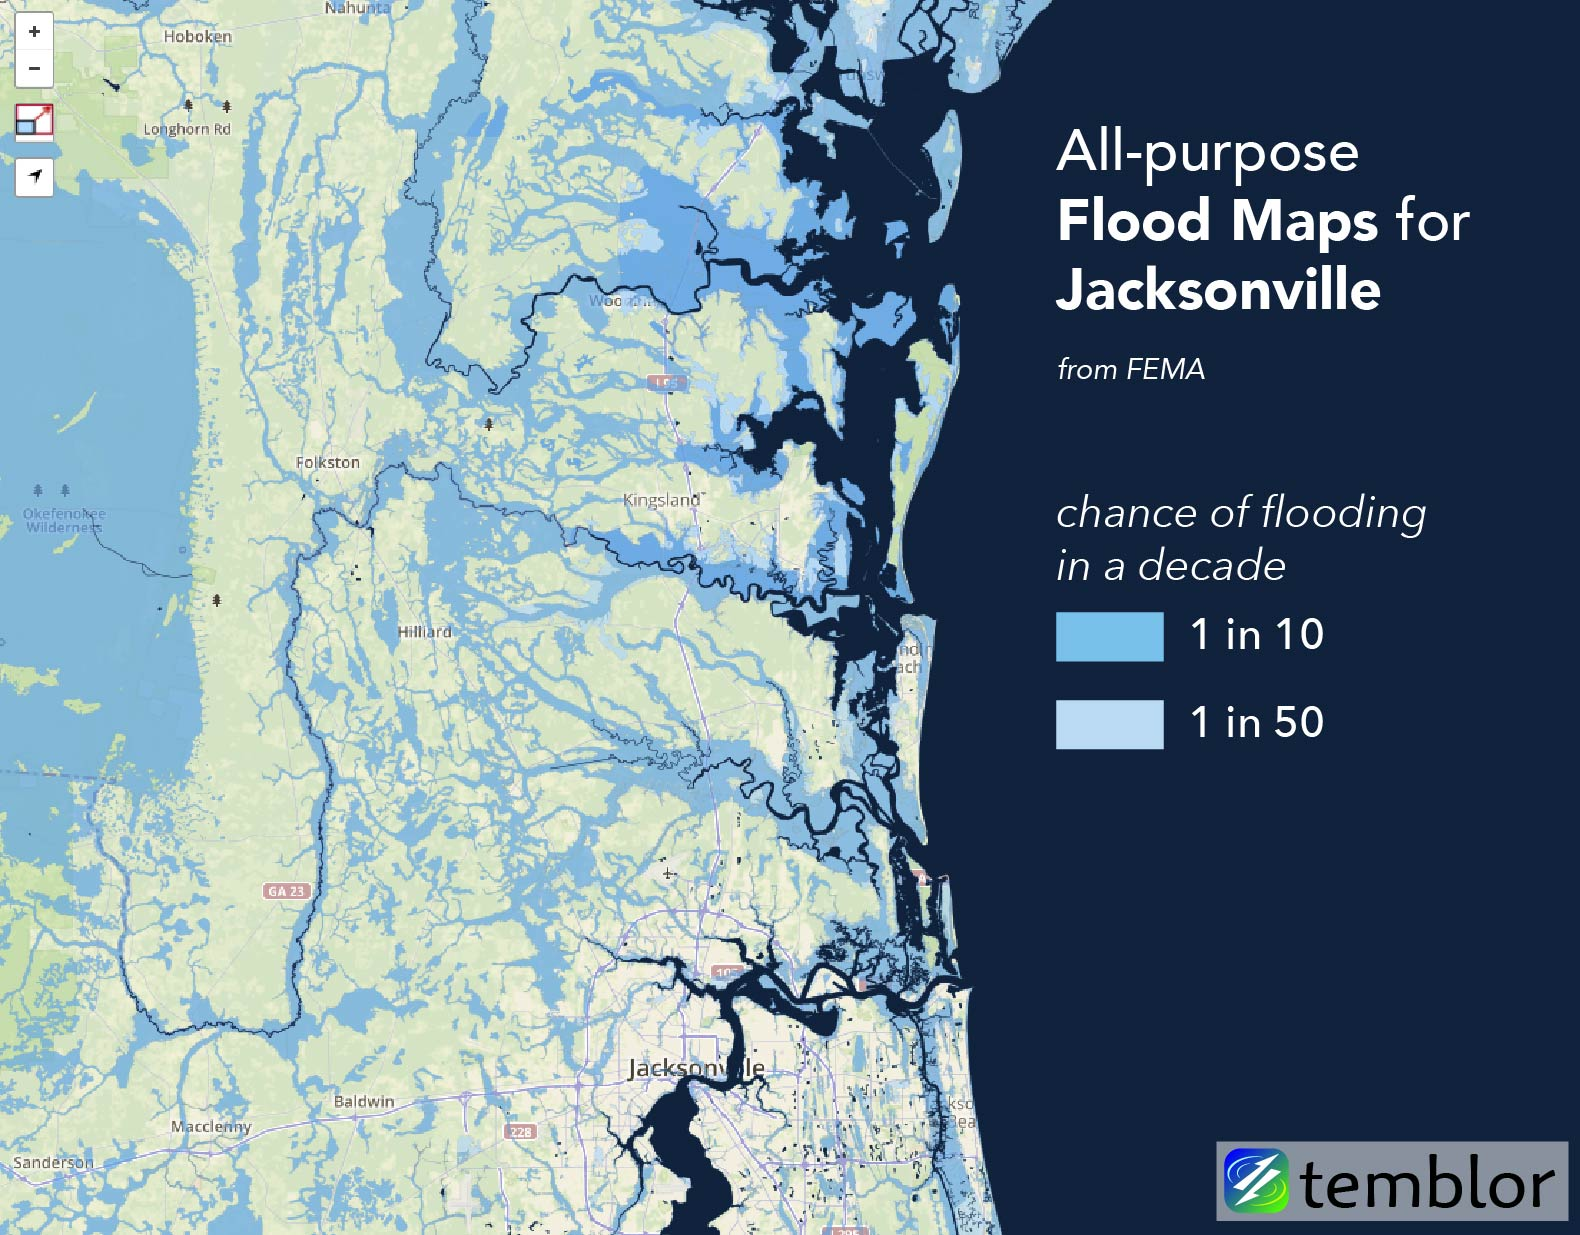 General FEMA flood map for Jacksonville, Florida.